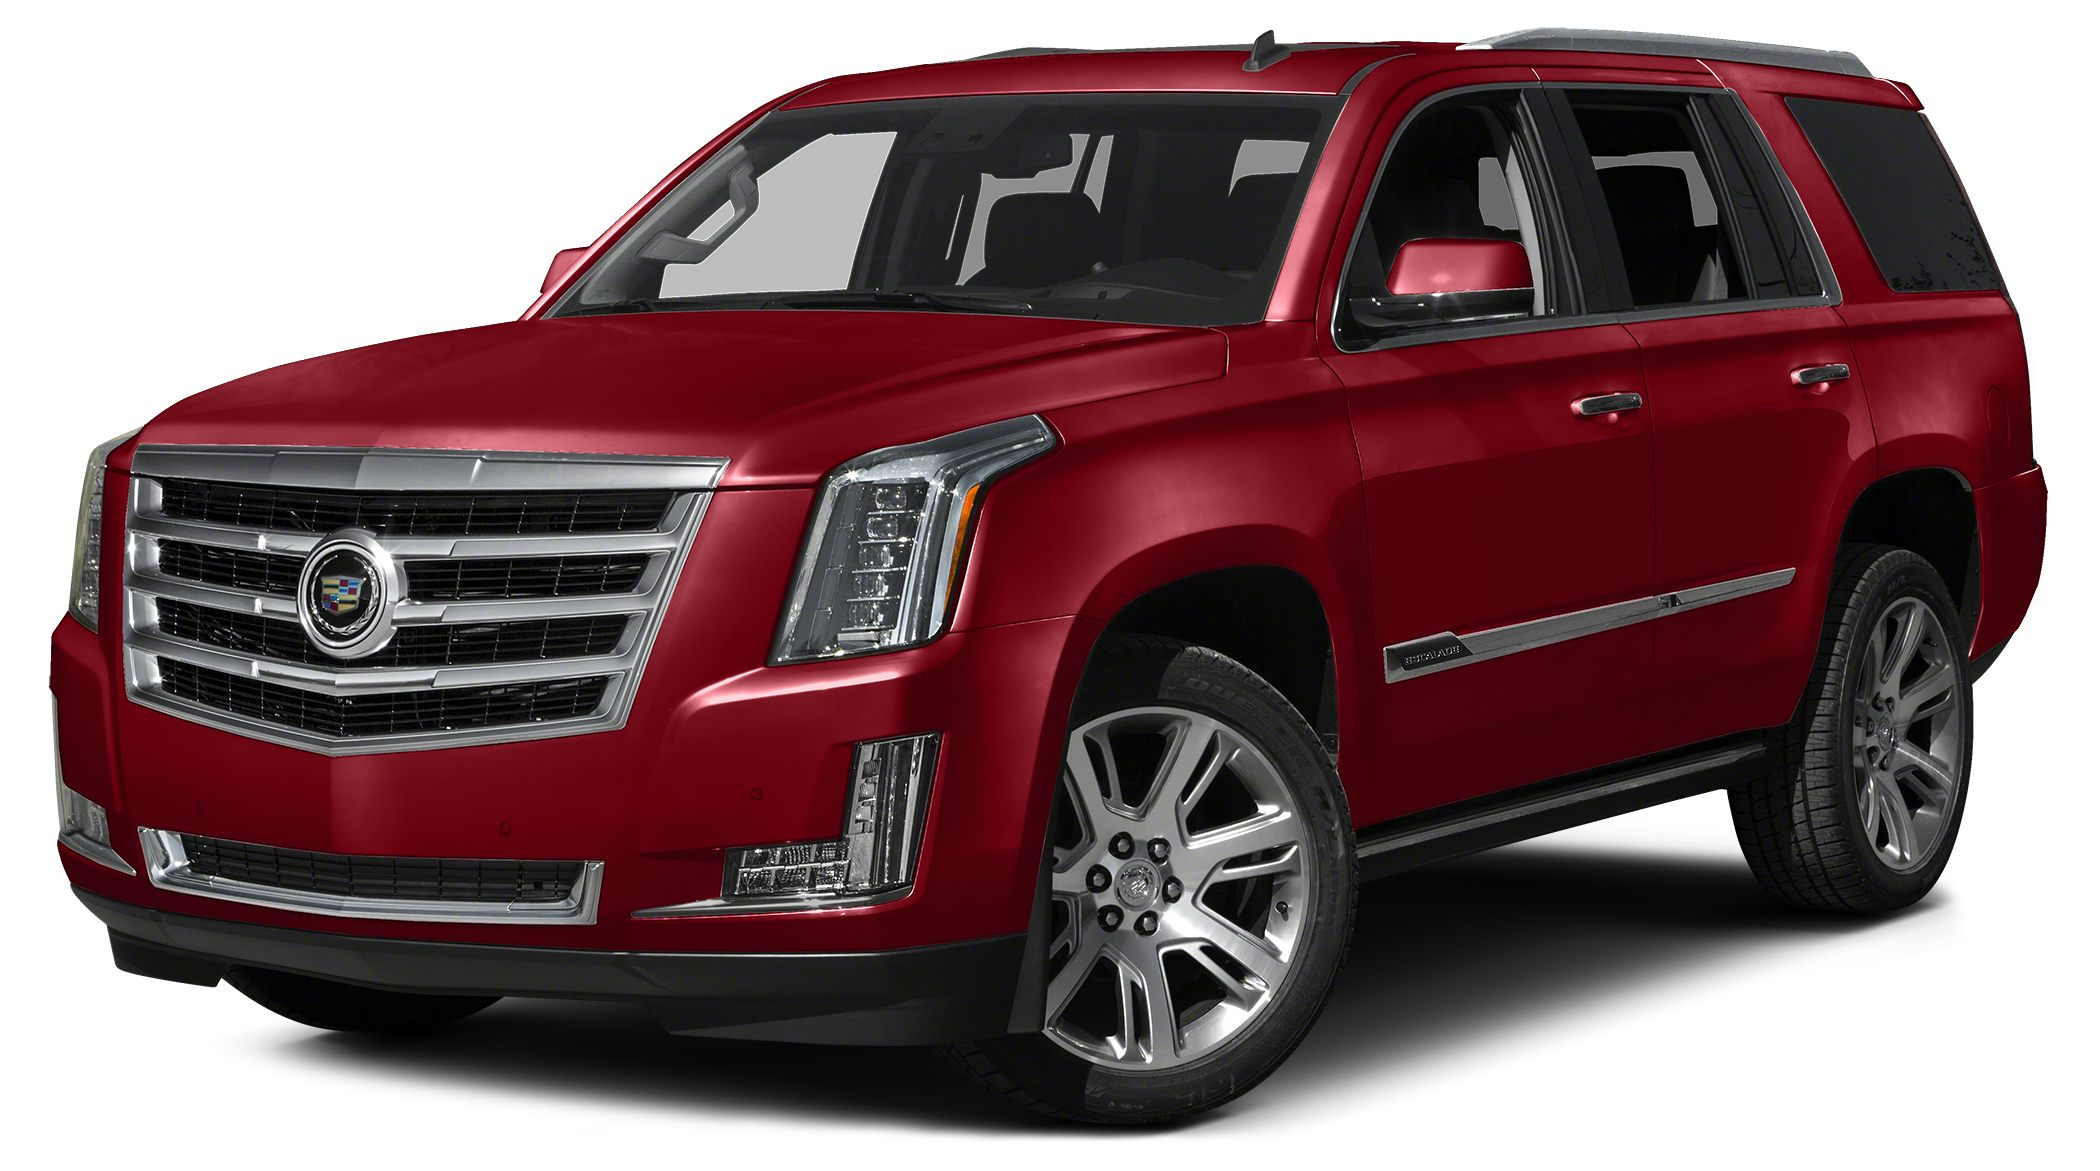 2015 Cadillac Escalade Premium Miles 6Color Crystal Red Stock C15149 VIN 1GYS3NKJ2FR684809